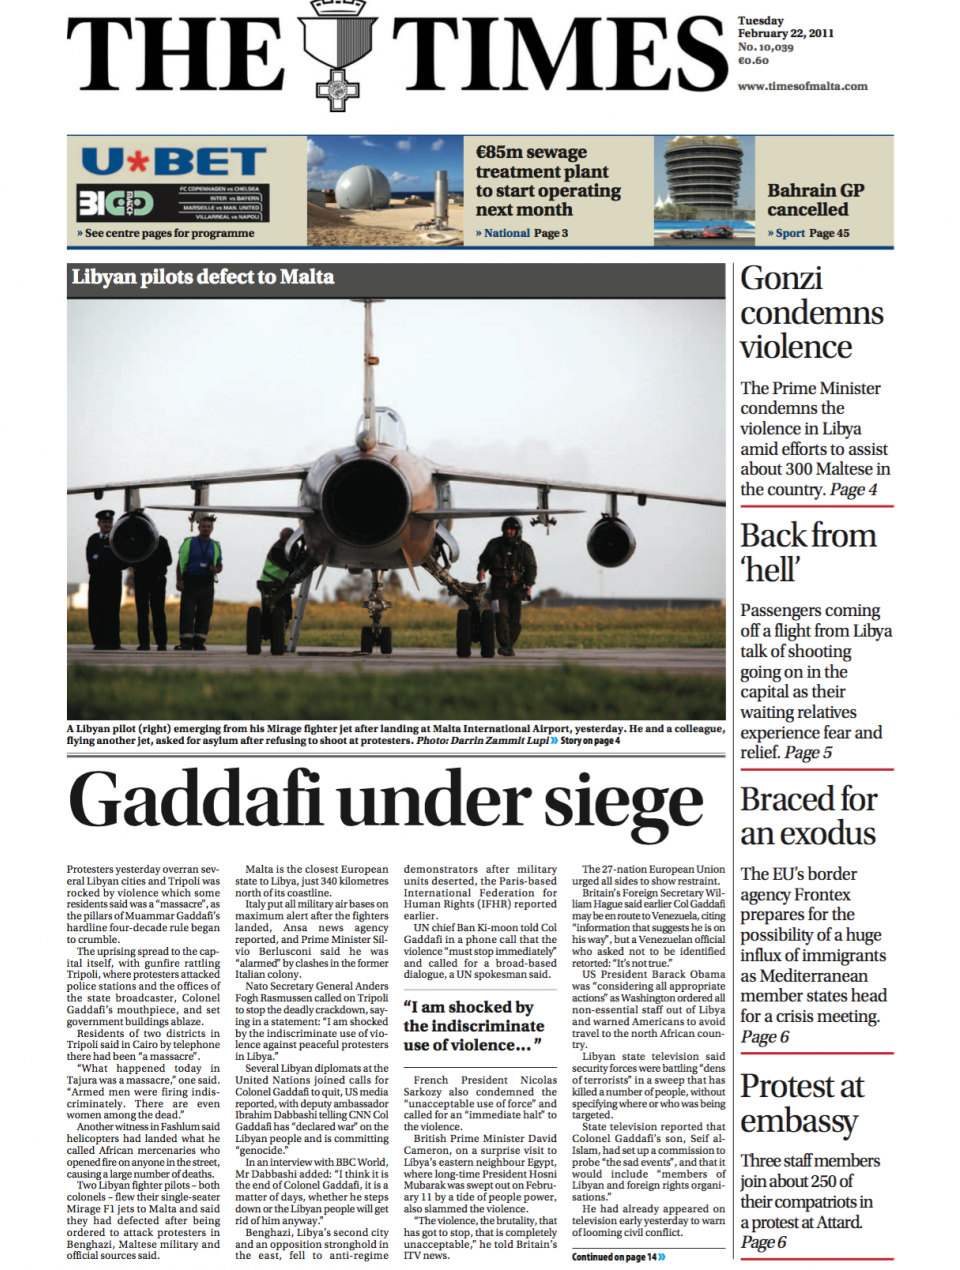 The day two Libyan fighter jets landed in Malta, the island was thrust into an international dispute.